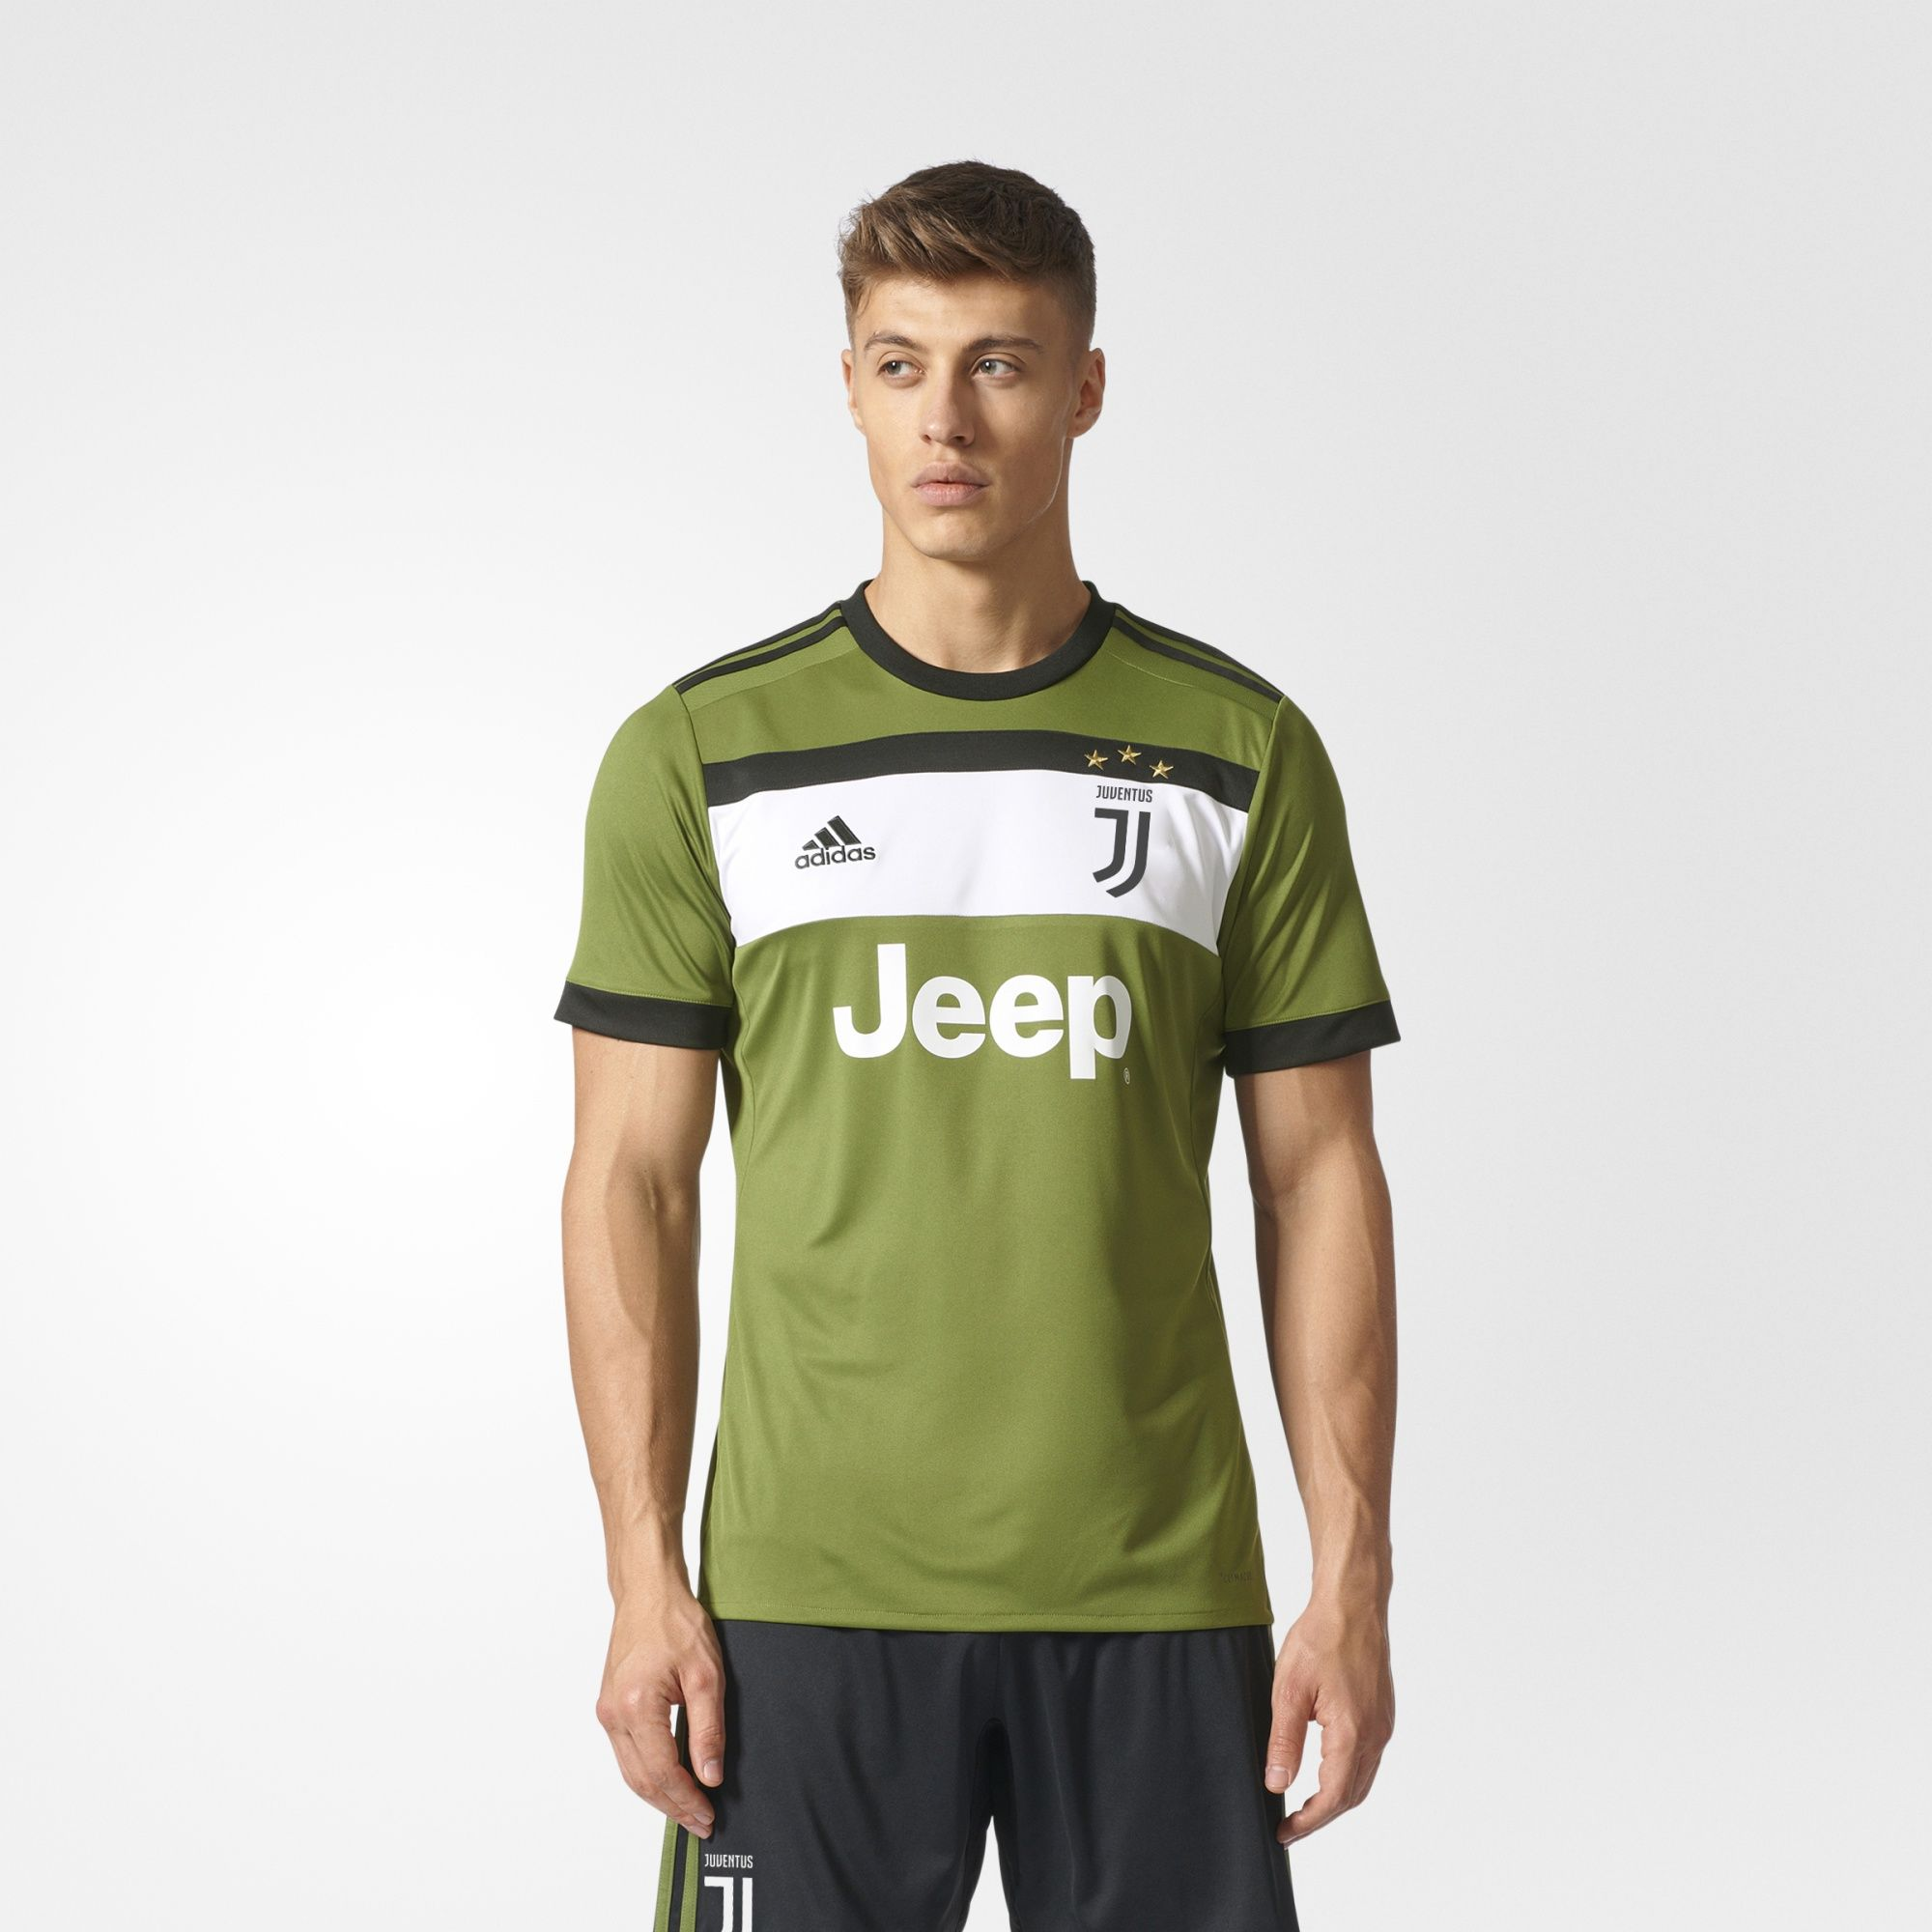 release date 136c3 a340e Juventus 17/18 Adidas Third Kit | 17/18 Kits | Football ...